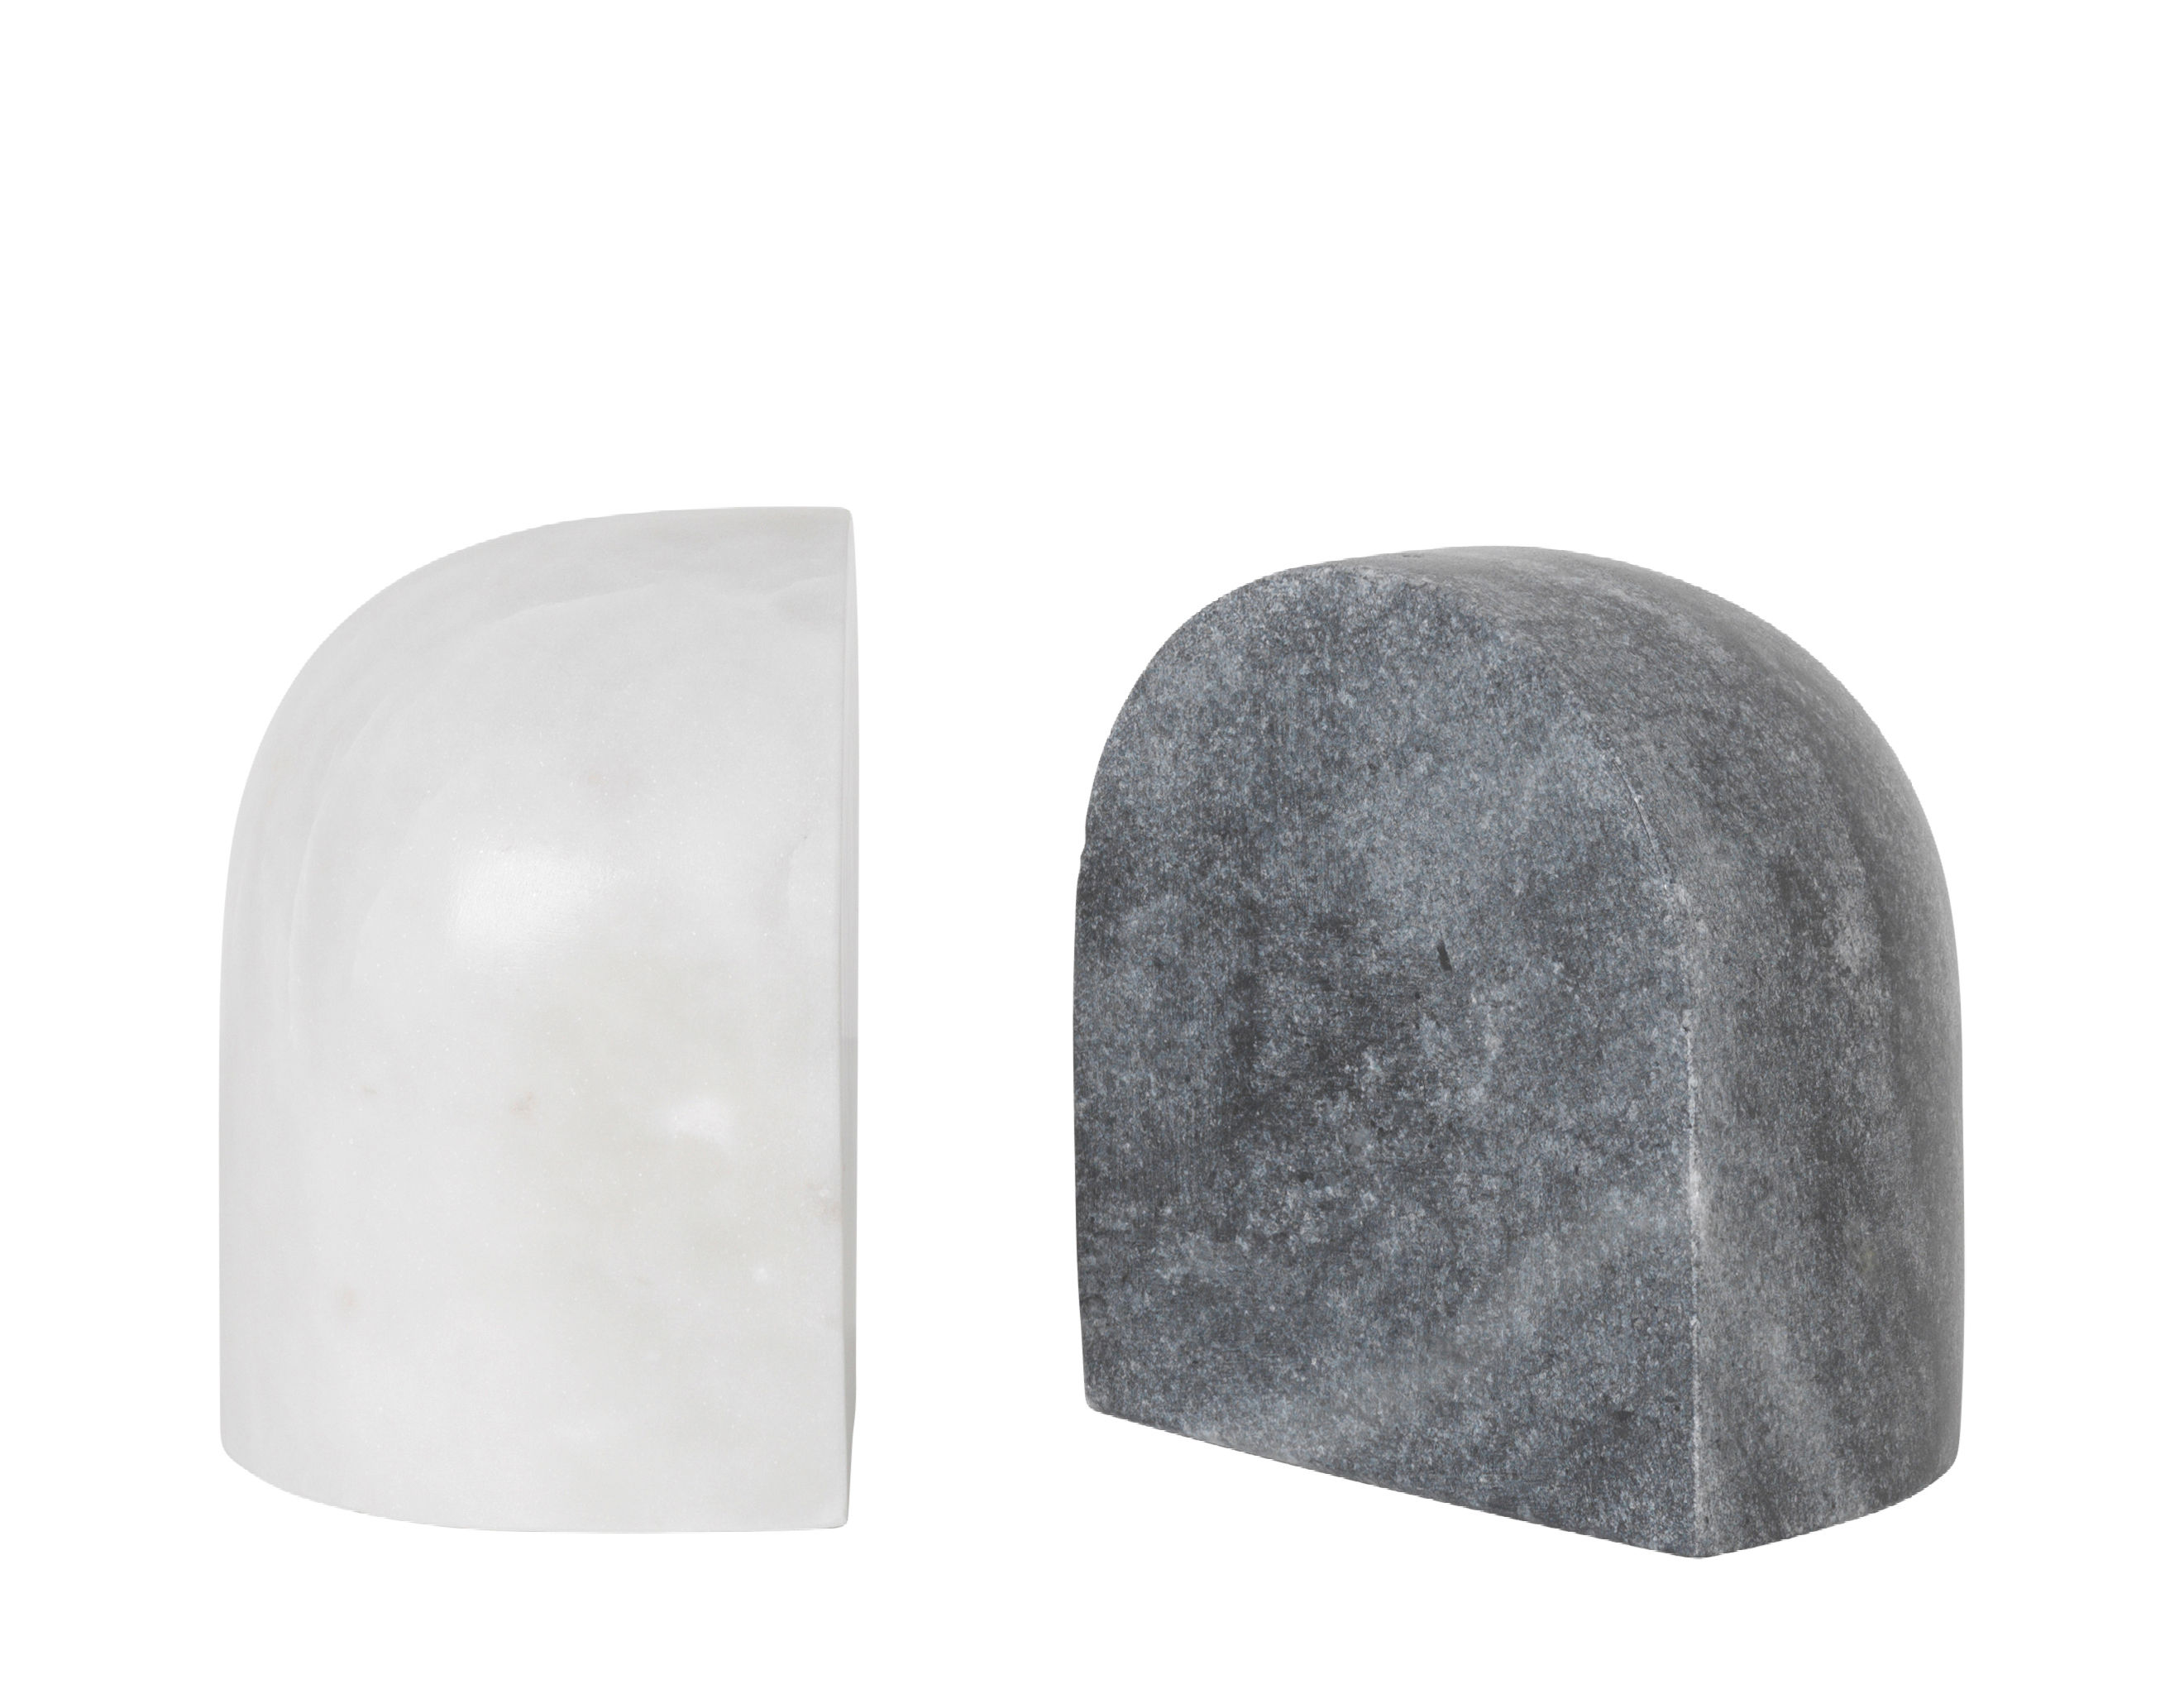 Decoration - Home Accessories - Luru Book end - / Set of 2 - Marble by Ferm Living - Grey & white - Marble